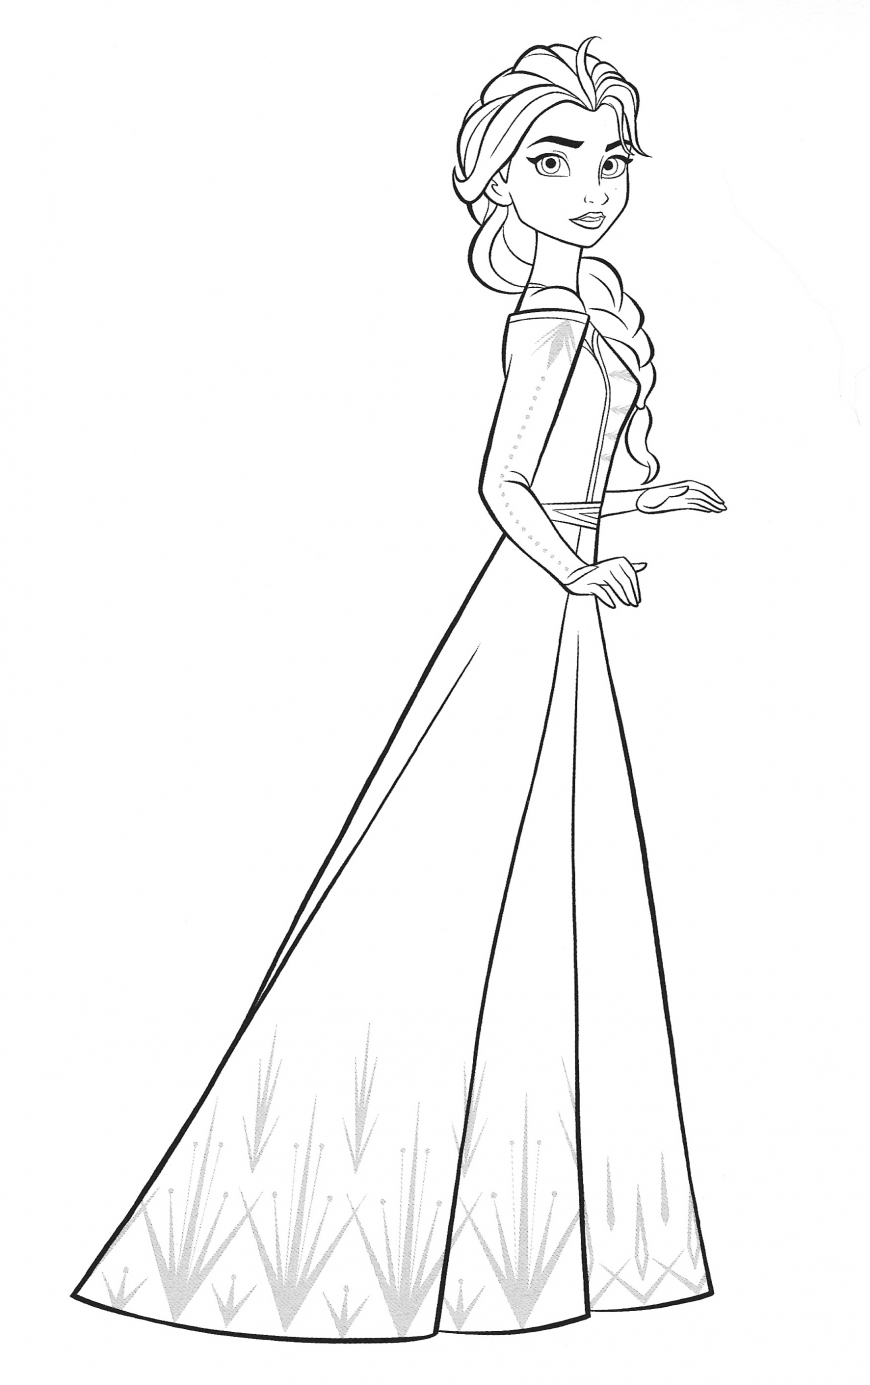 Frozen 2 Elsa coloring page by variandeservesbetter on